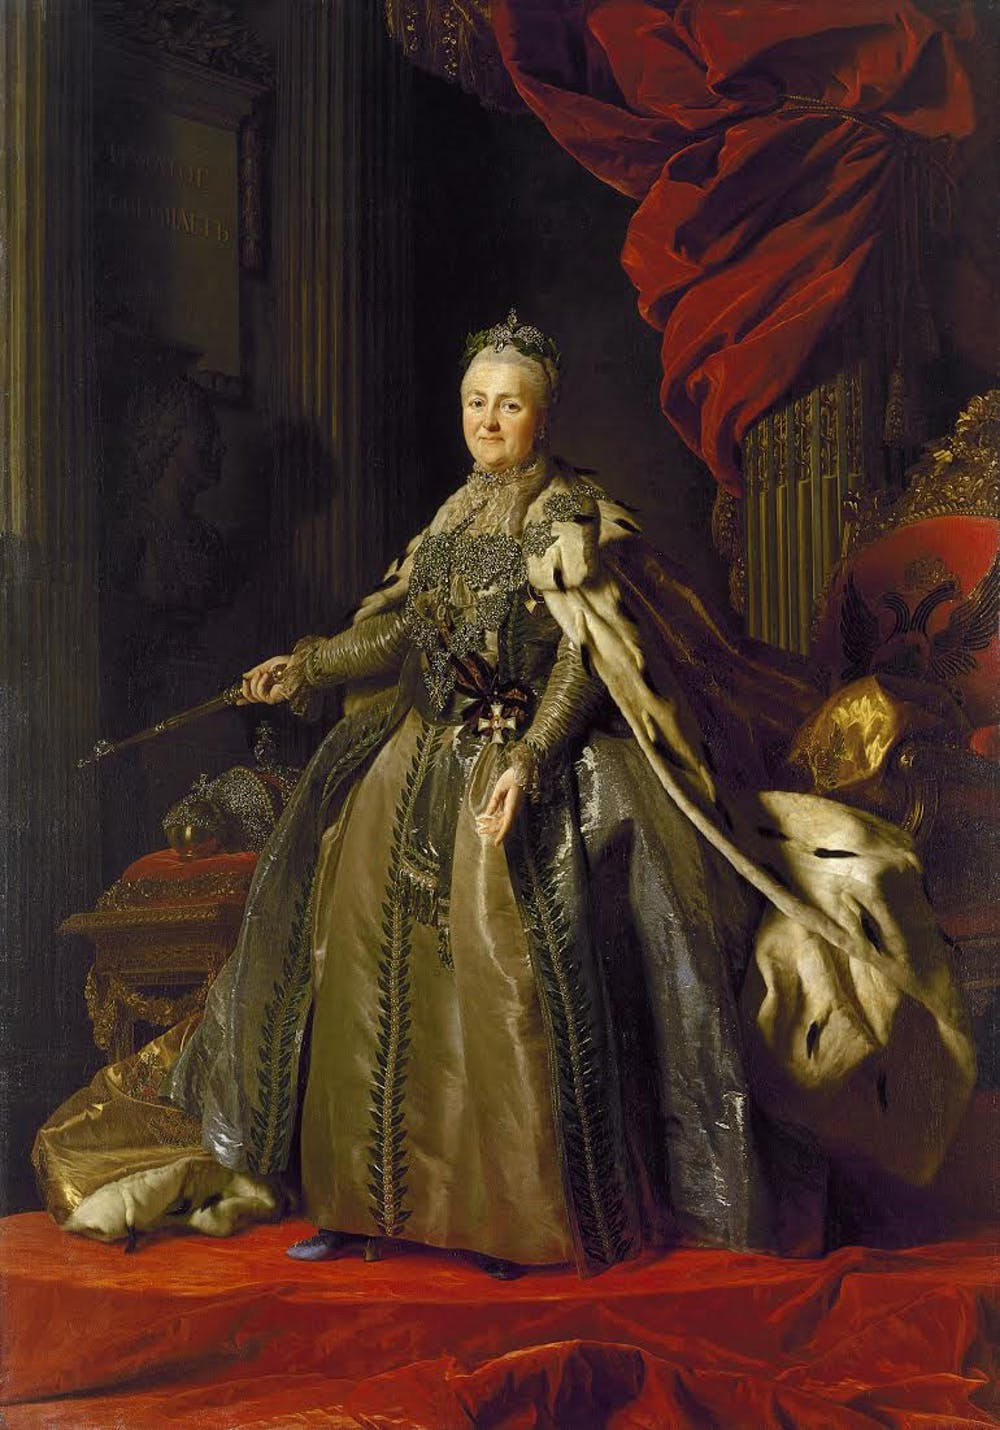 Why Catherine the Great's 'greatness' doesn't grate